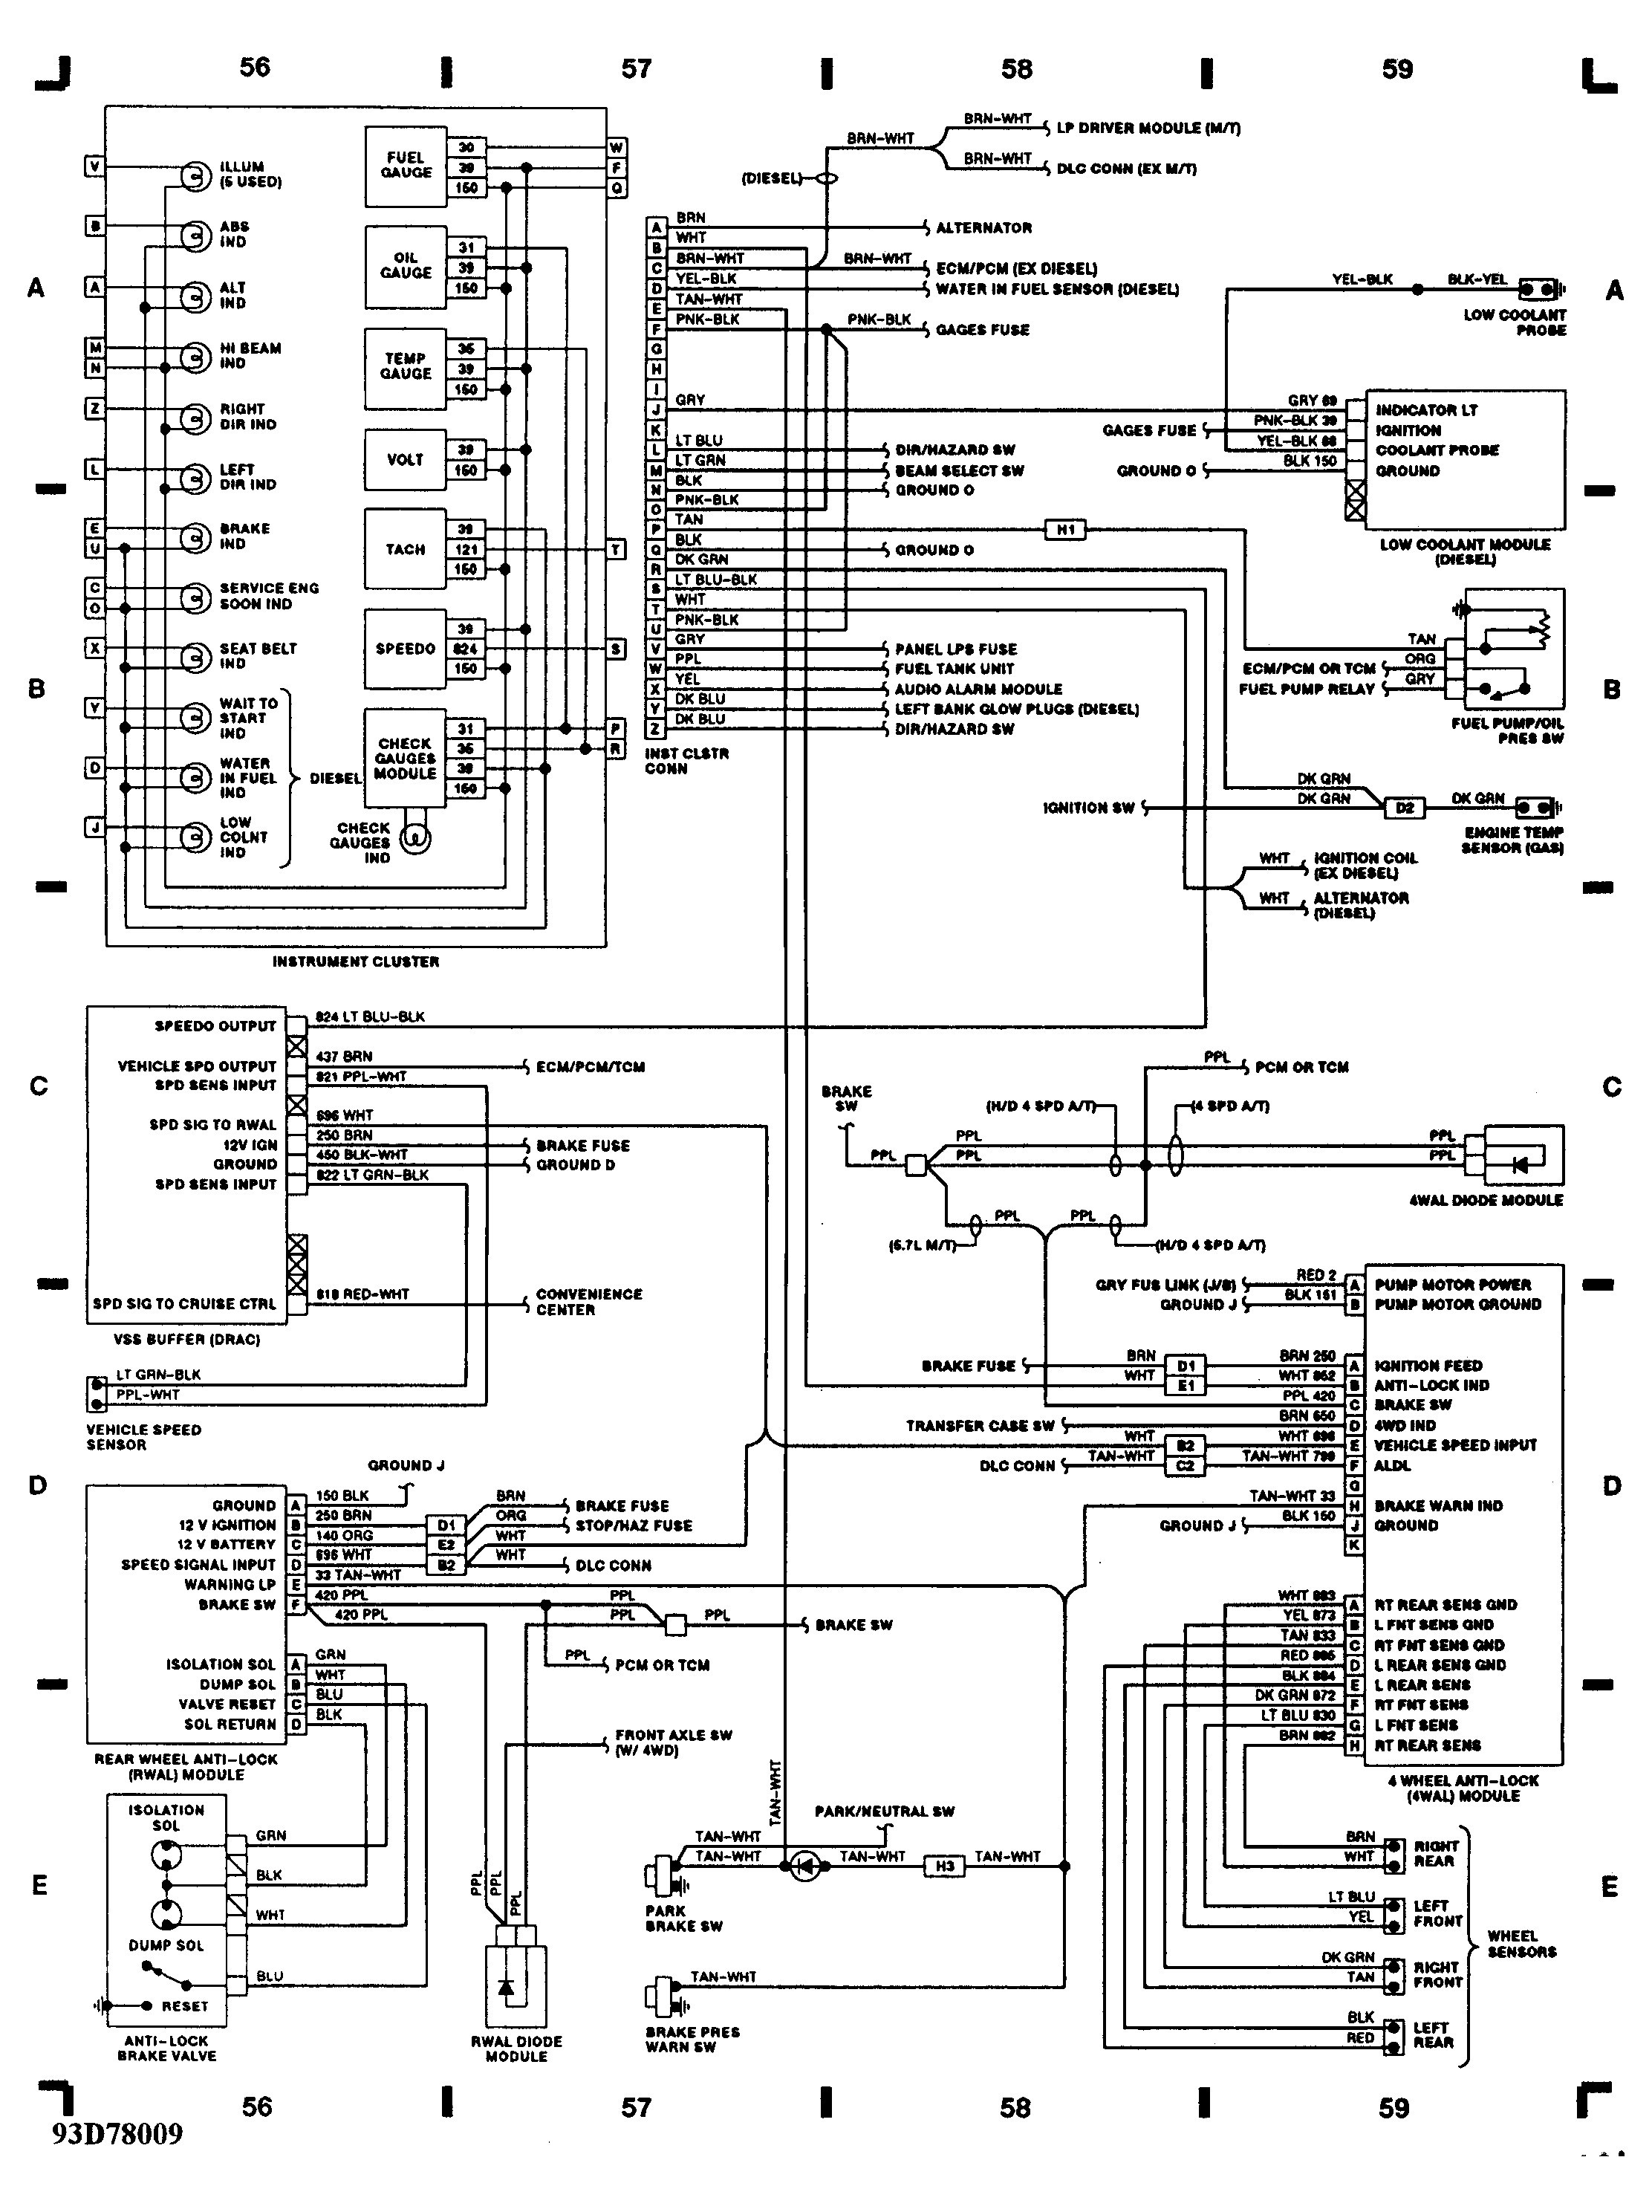 2000 Chevy Silverado Engine Diagram Elegant 1993 Chevy Silverado Wiring Diagram Diagram Of 2000 Chevy Silverado Engine Diagram